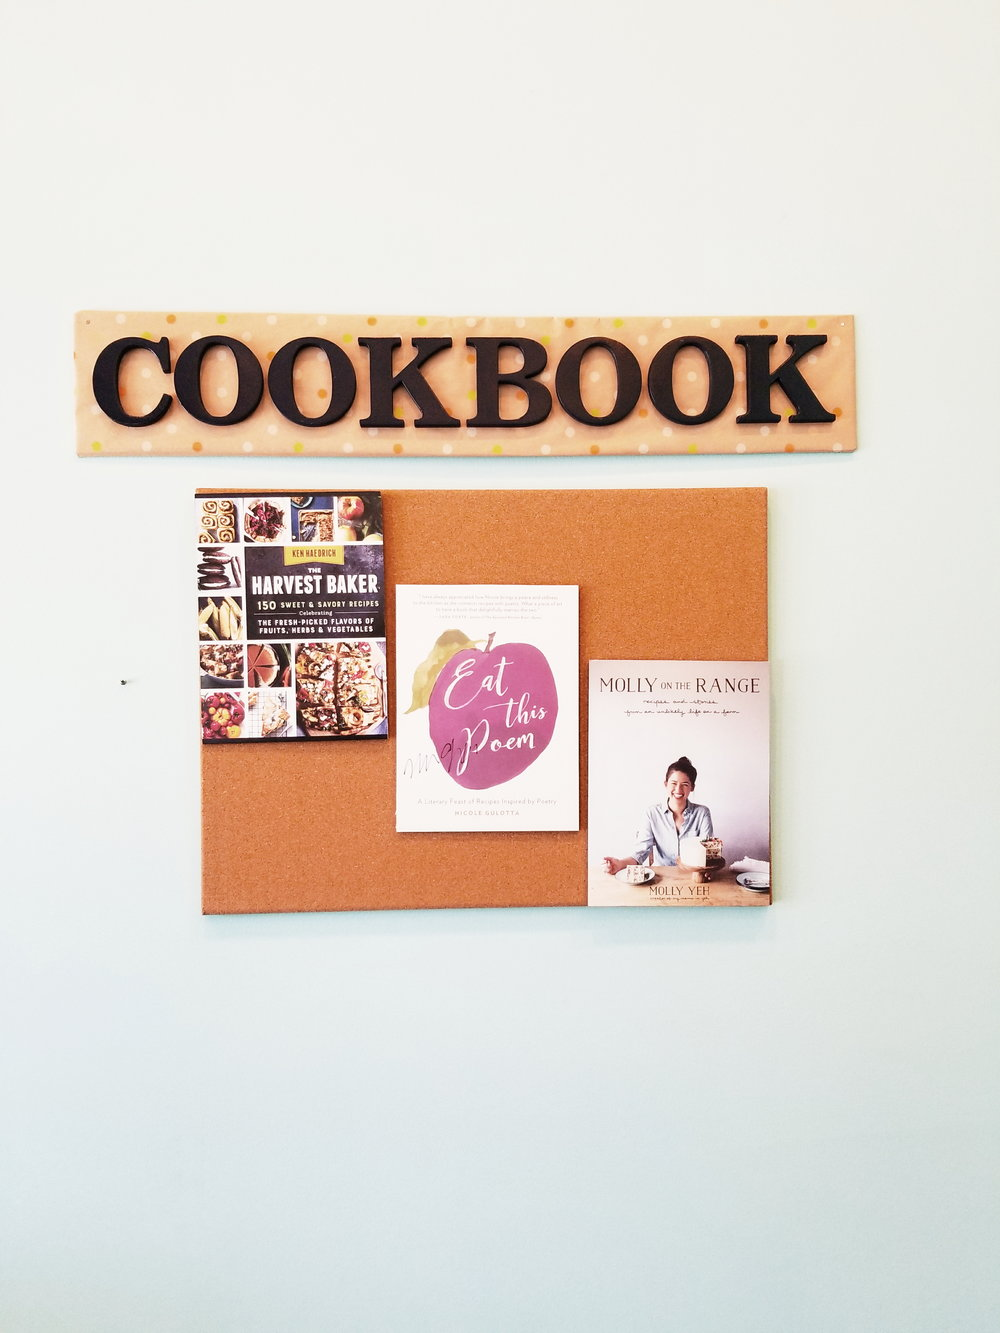 Cookbook covers.jpg